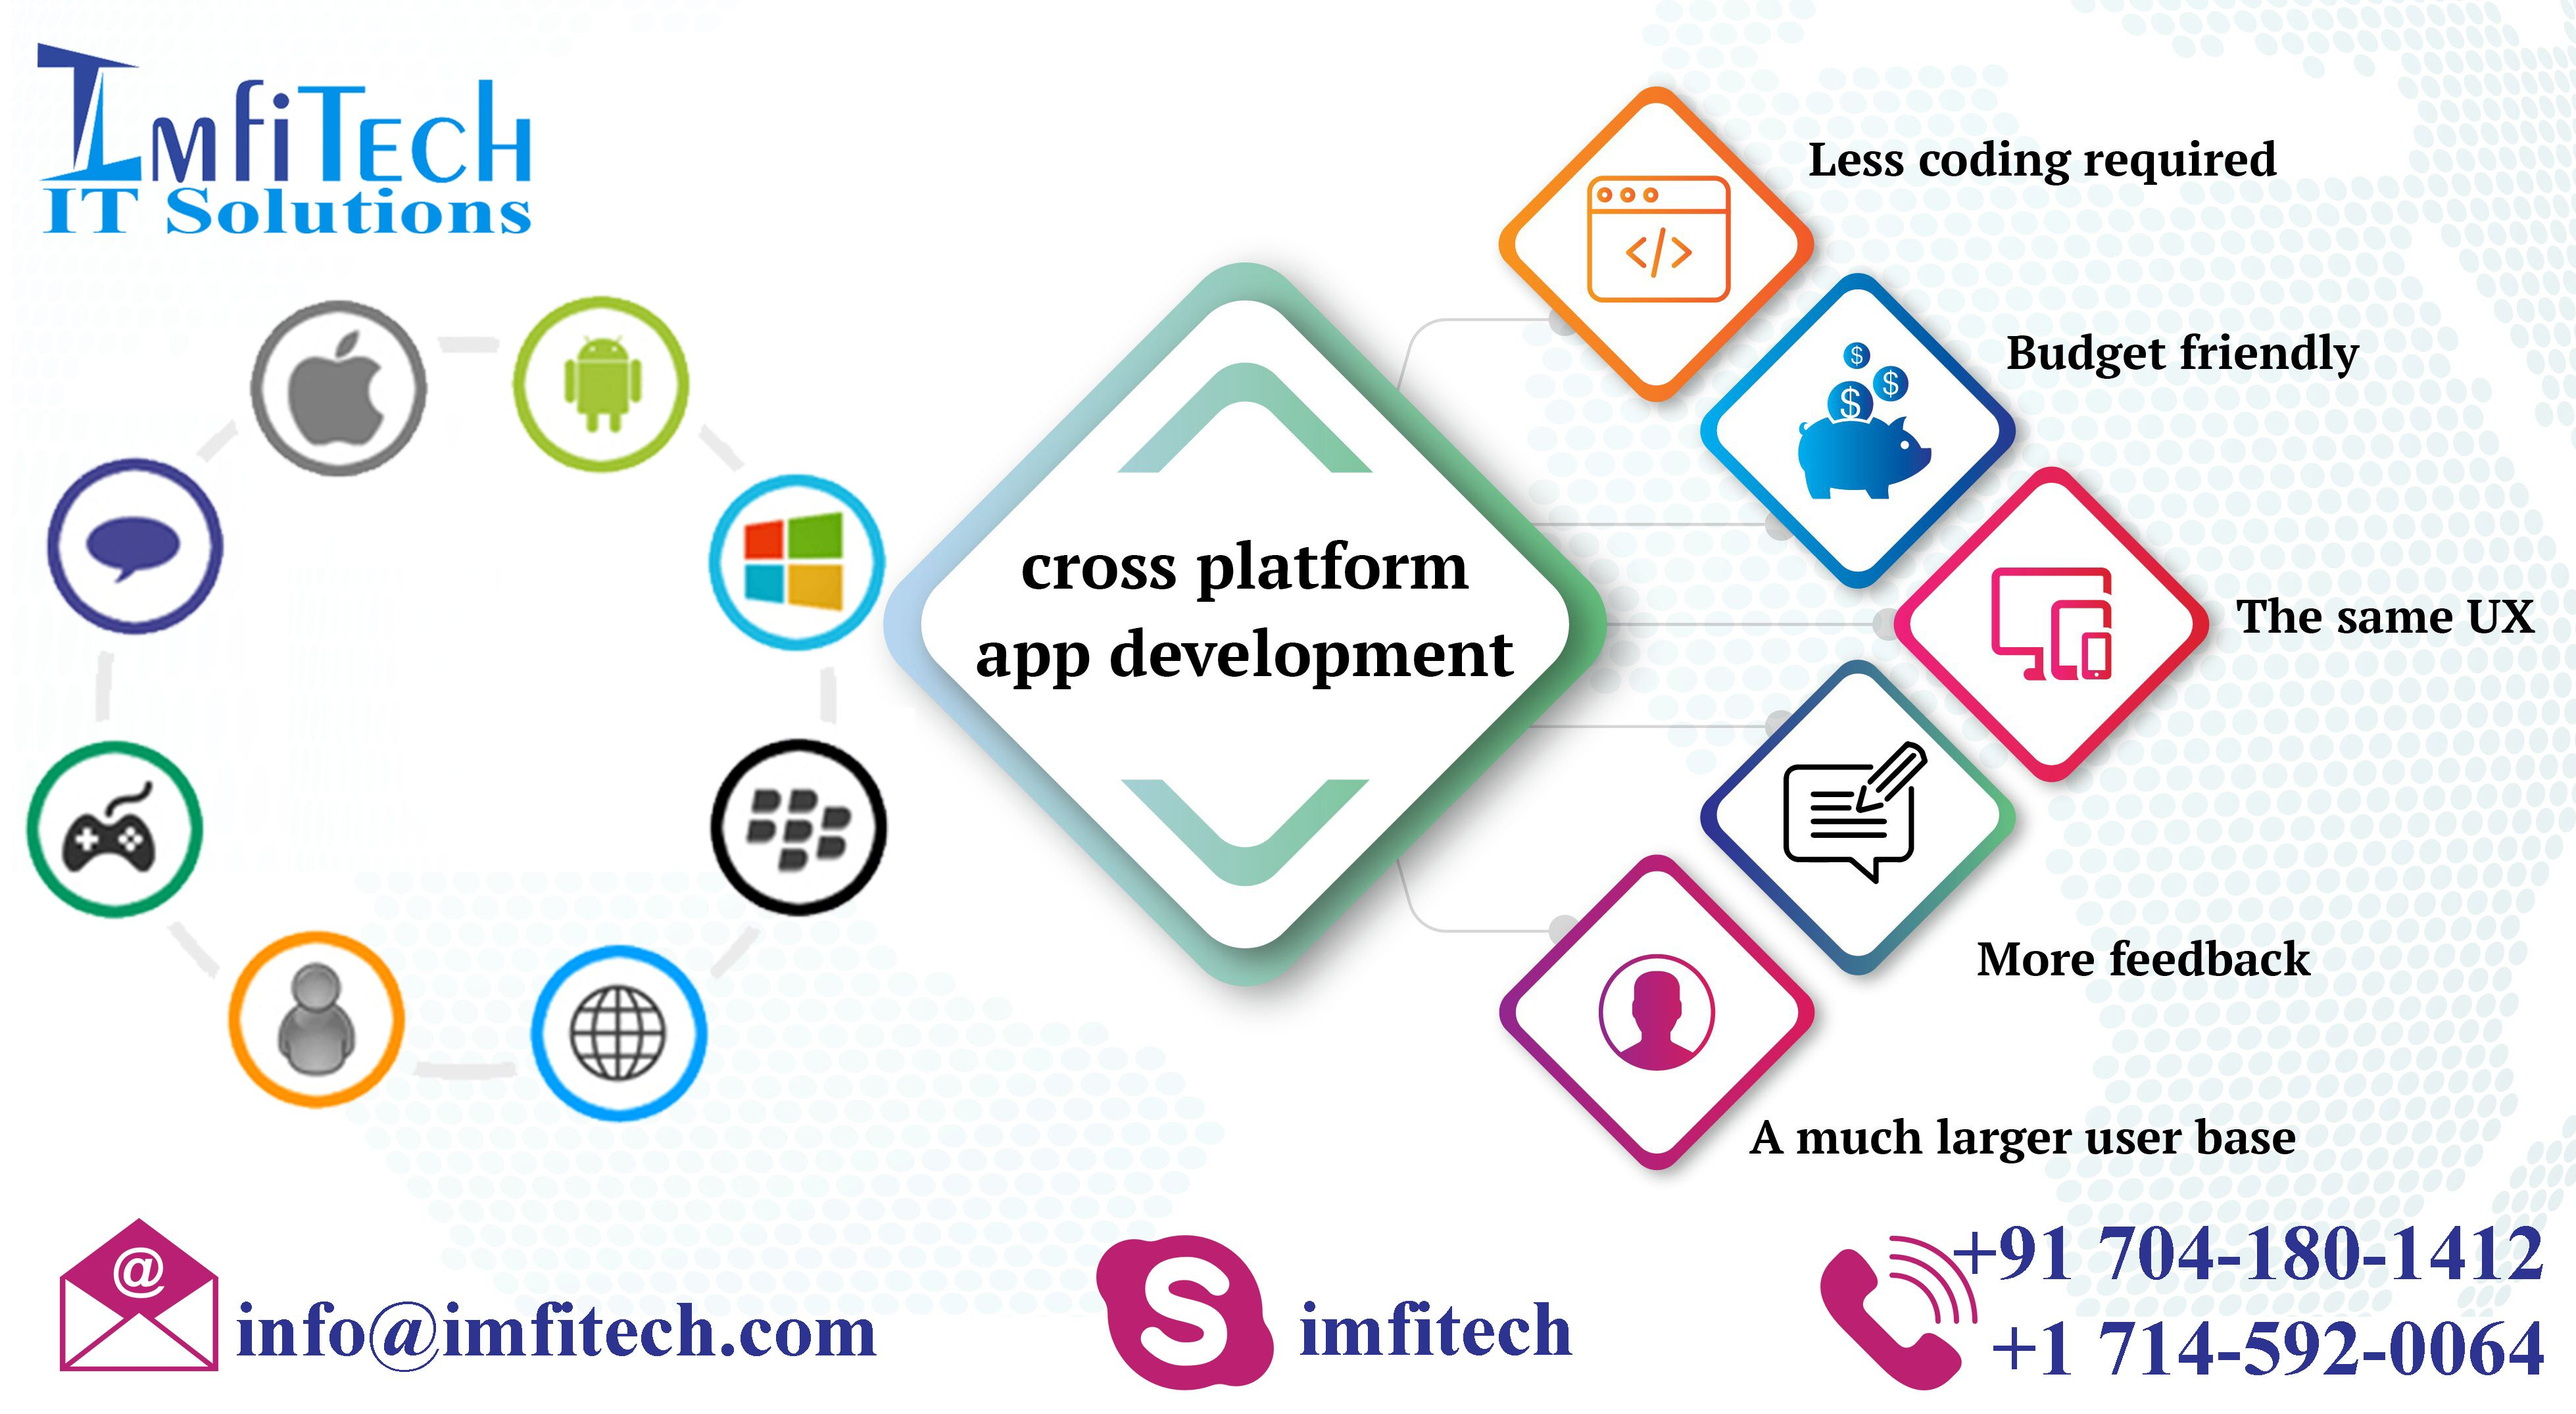 Imfitech is a provider of MultiPlatform application